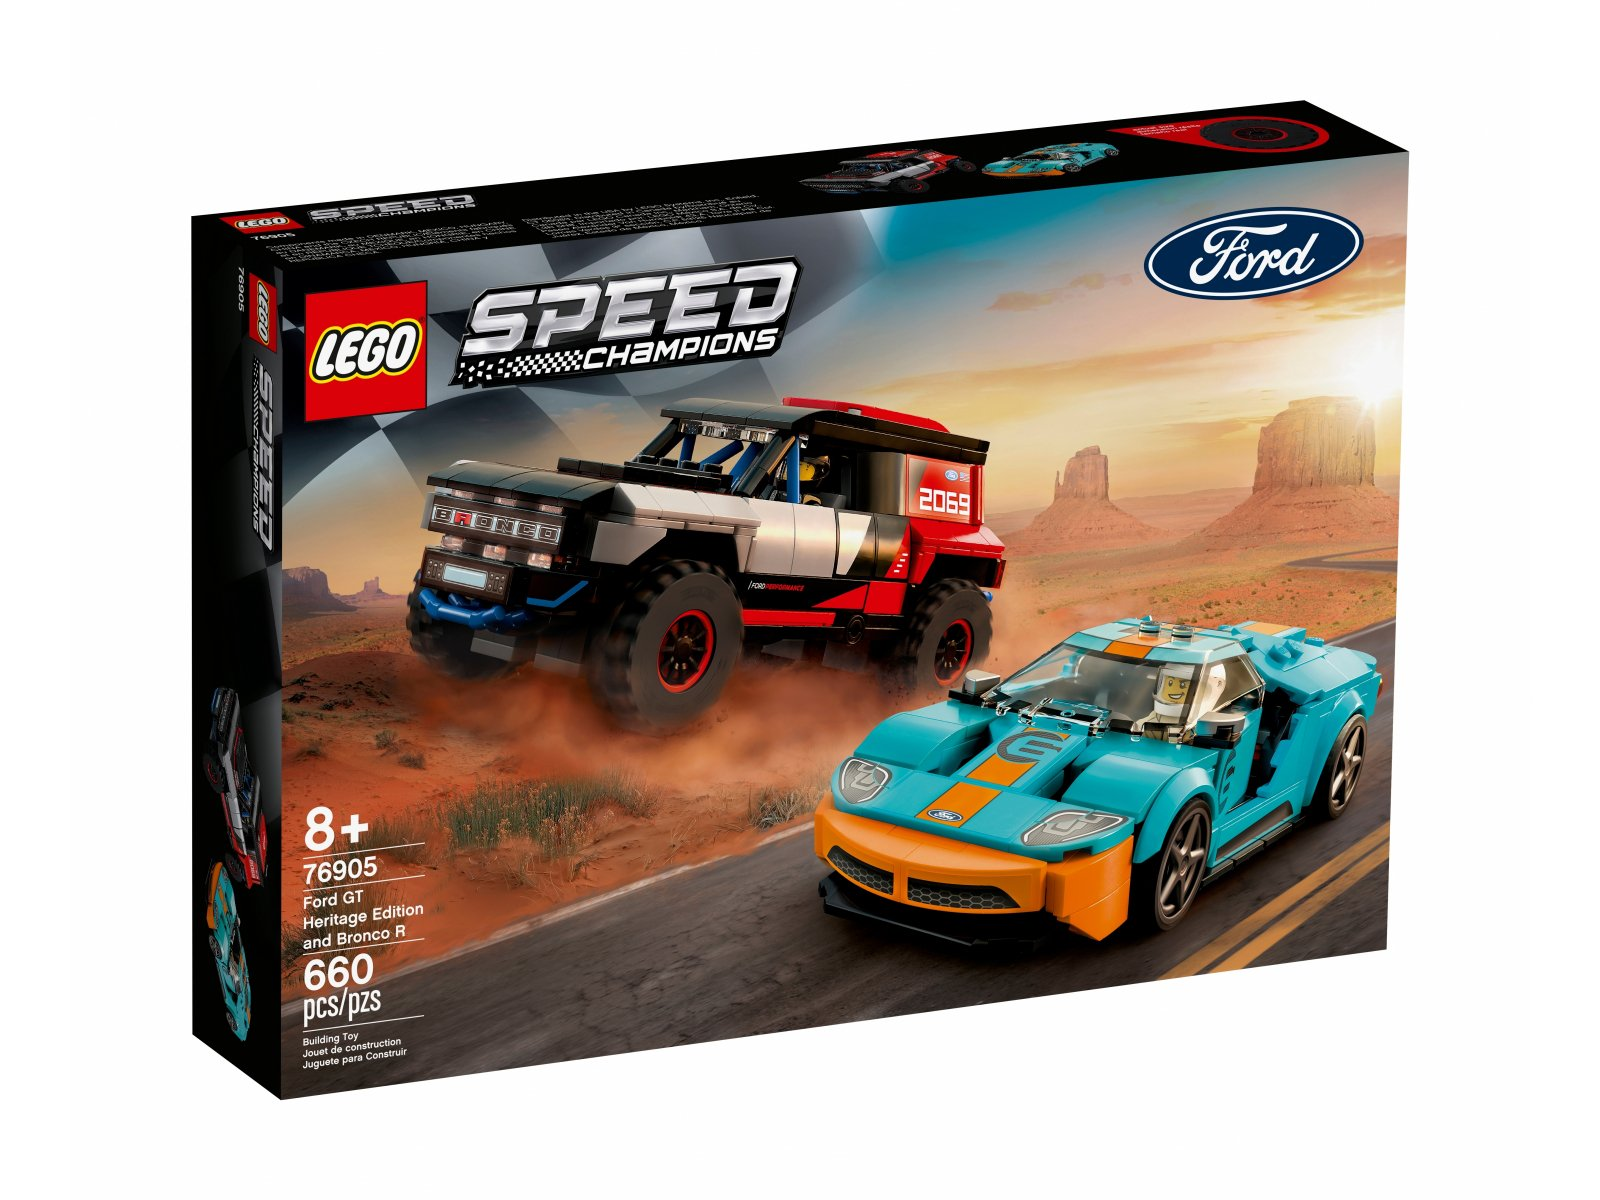 LEGO 76905 Ford GT Heritage Edition i Bronco R